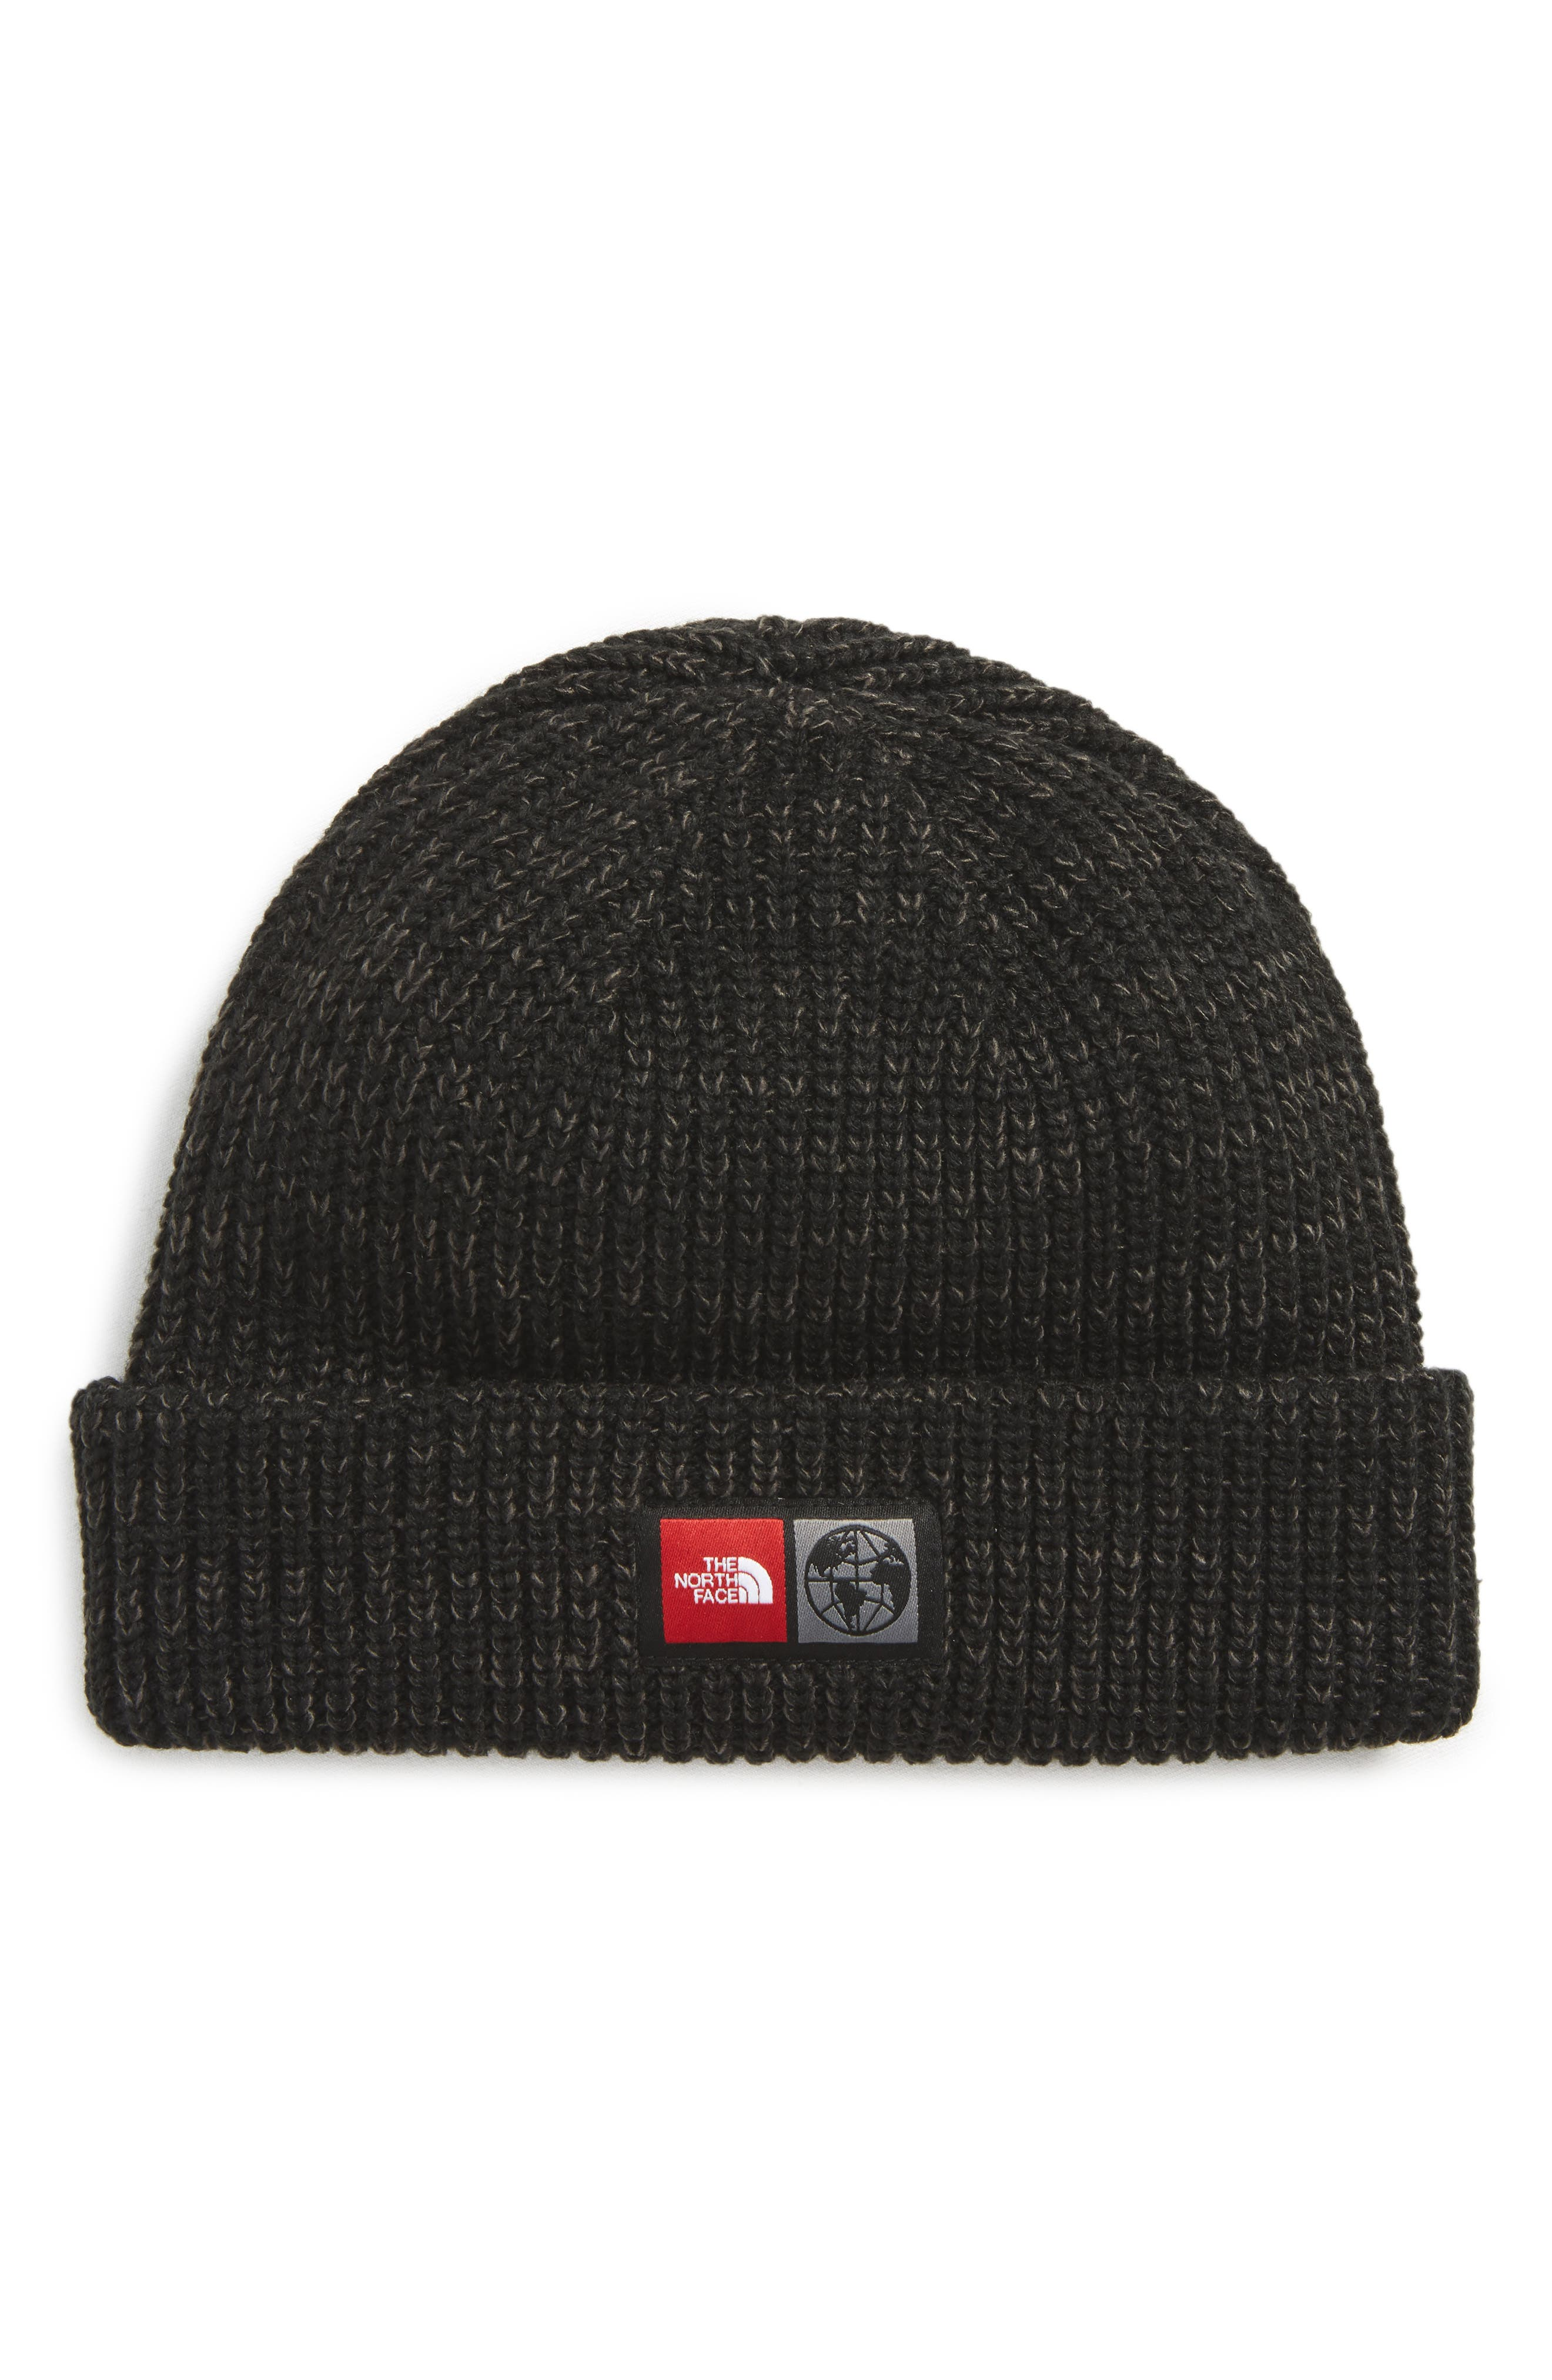 THE NORTH FACE International Collection Acrylic Beanie, Main, color, 001